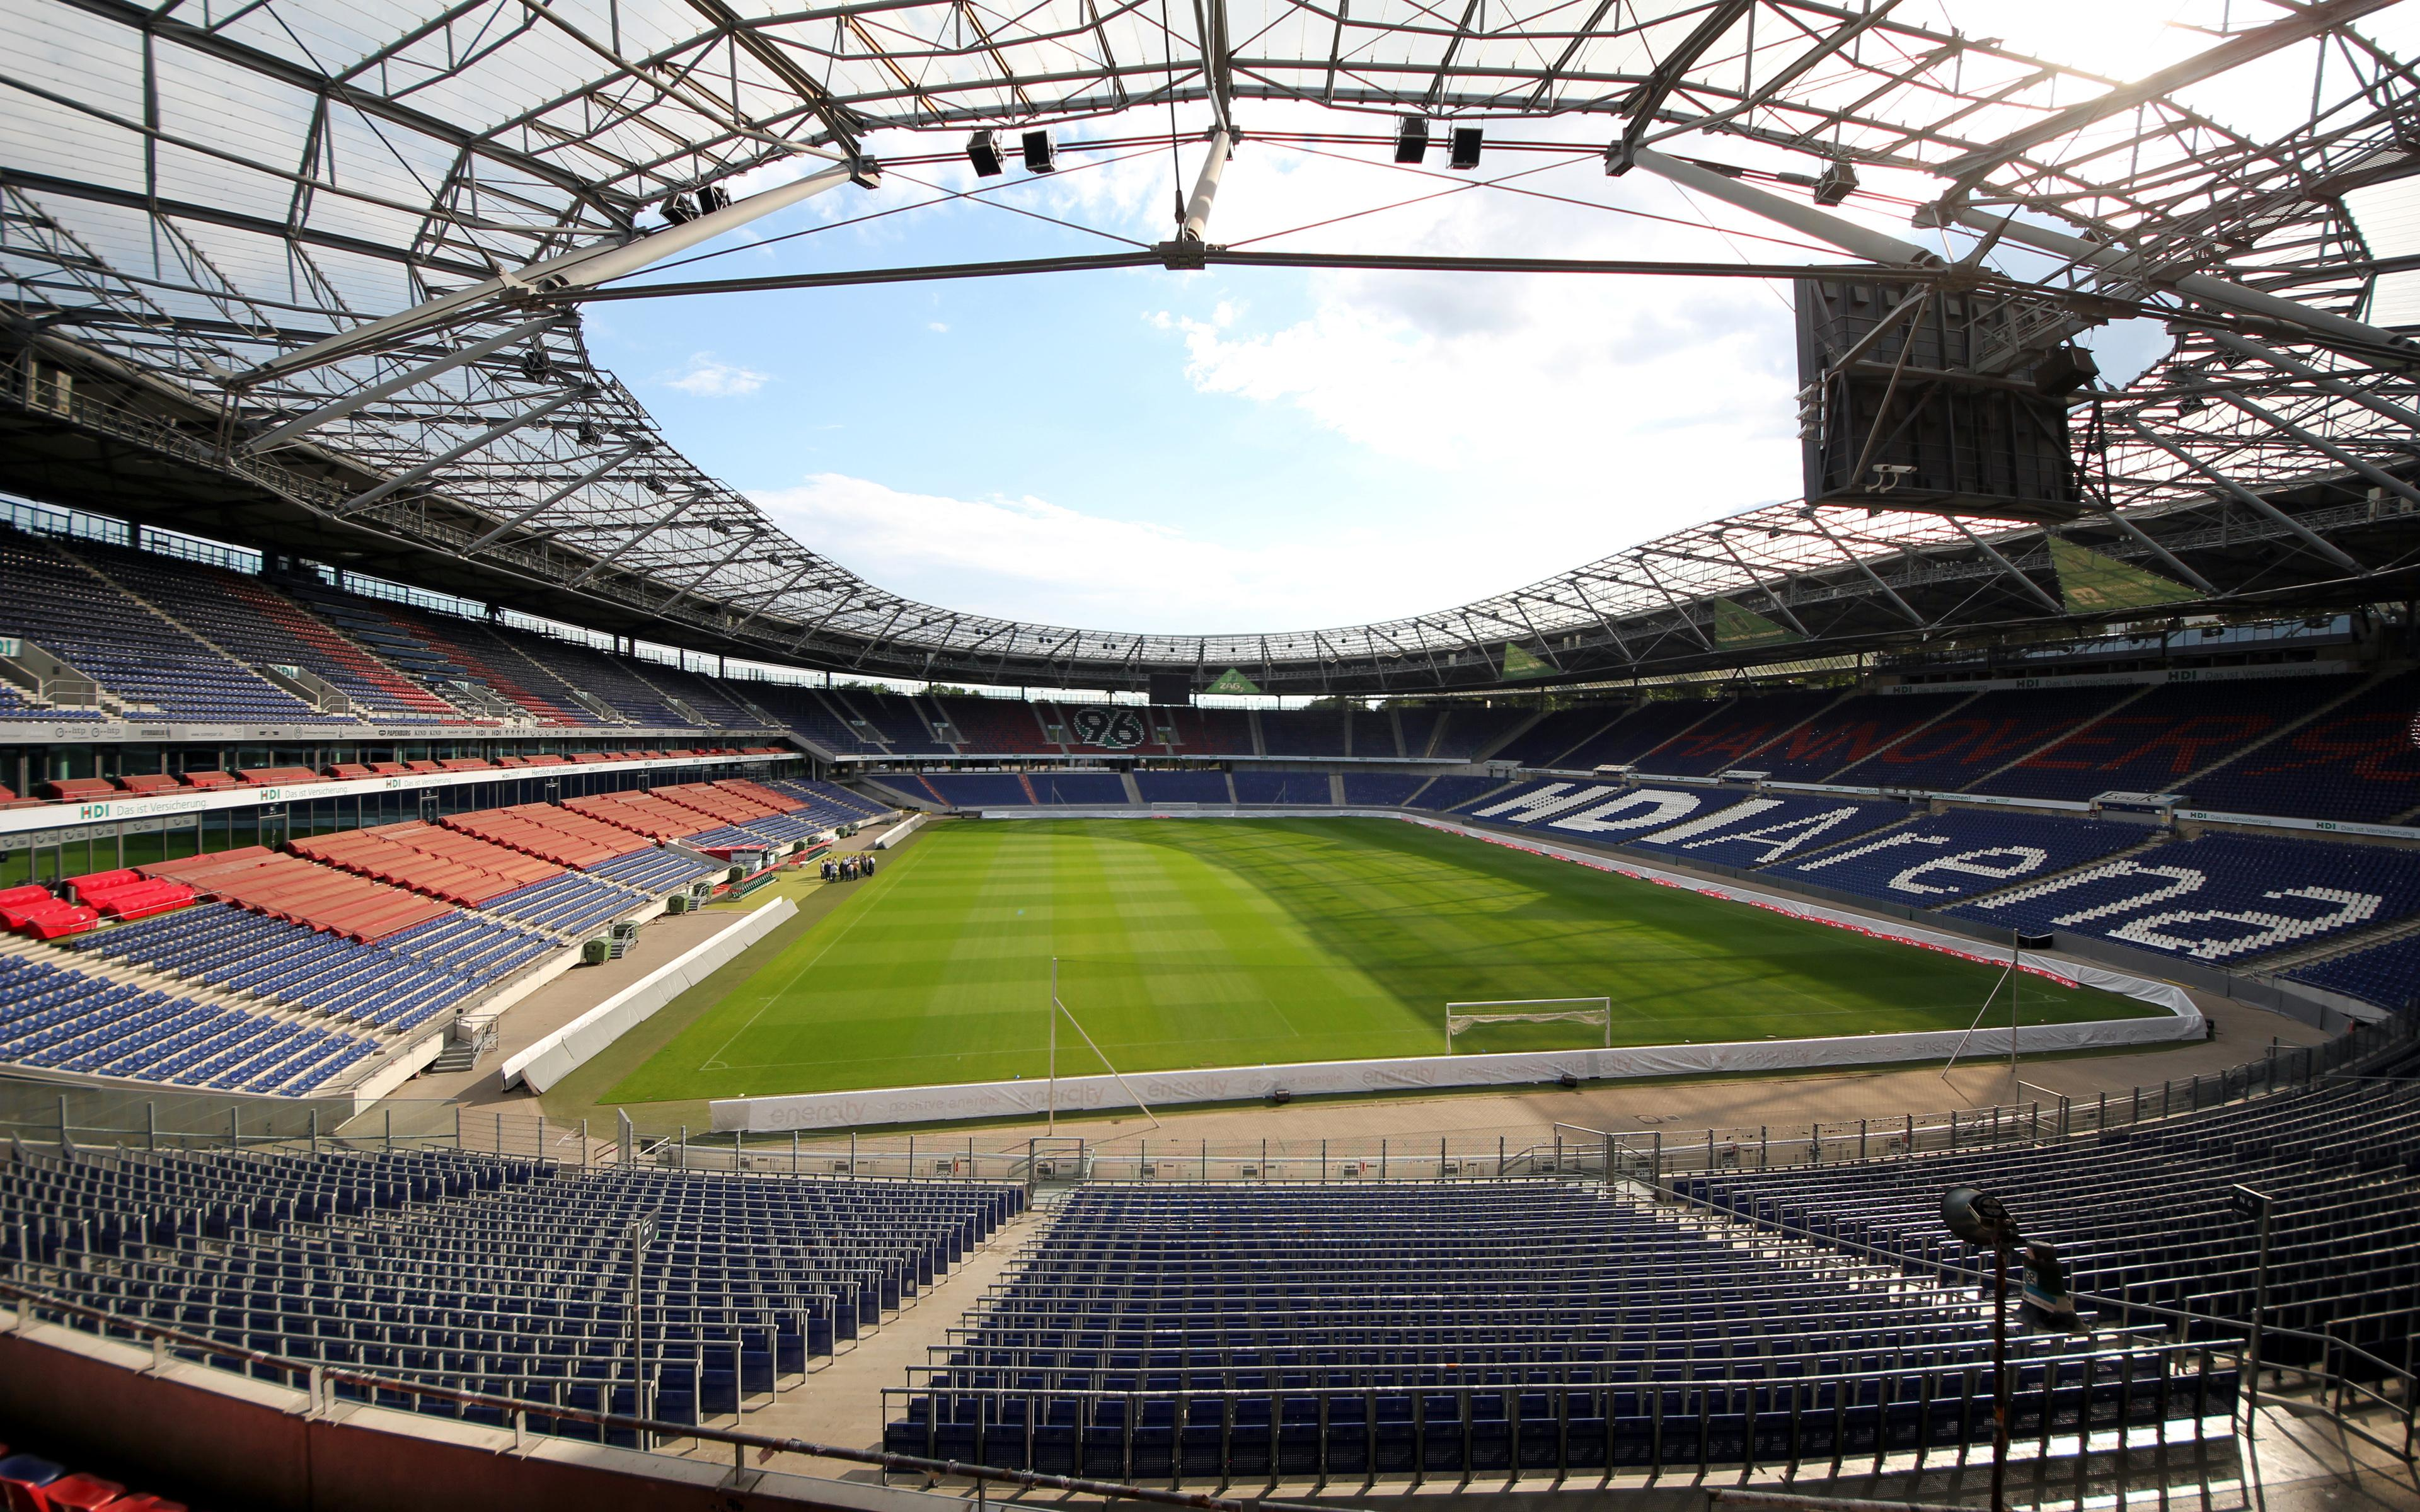 Download wallpapers HDI Arena, Hannover 96, football stadium, 4k